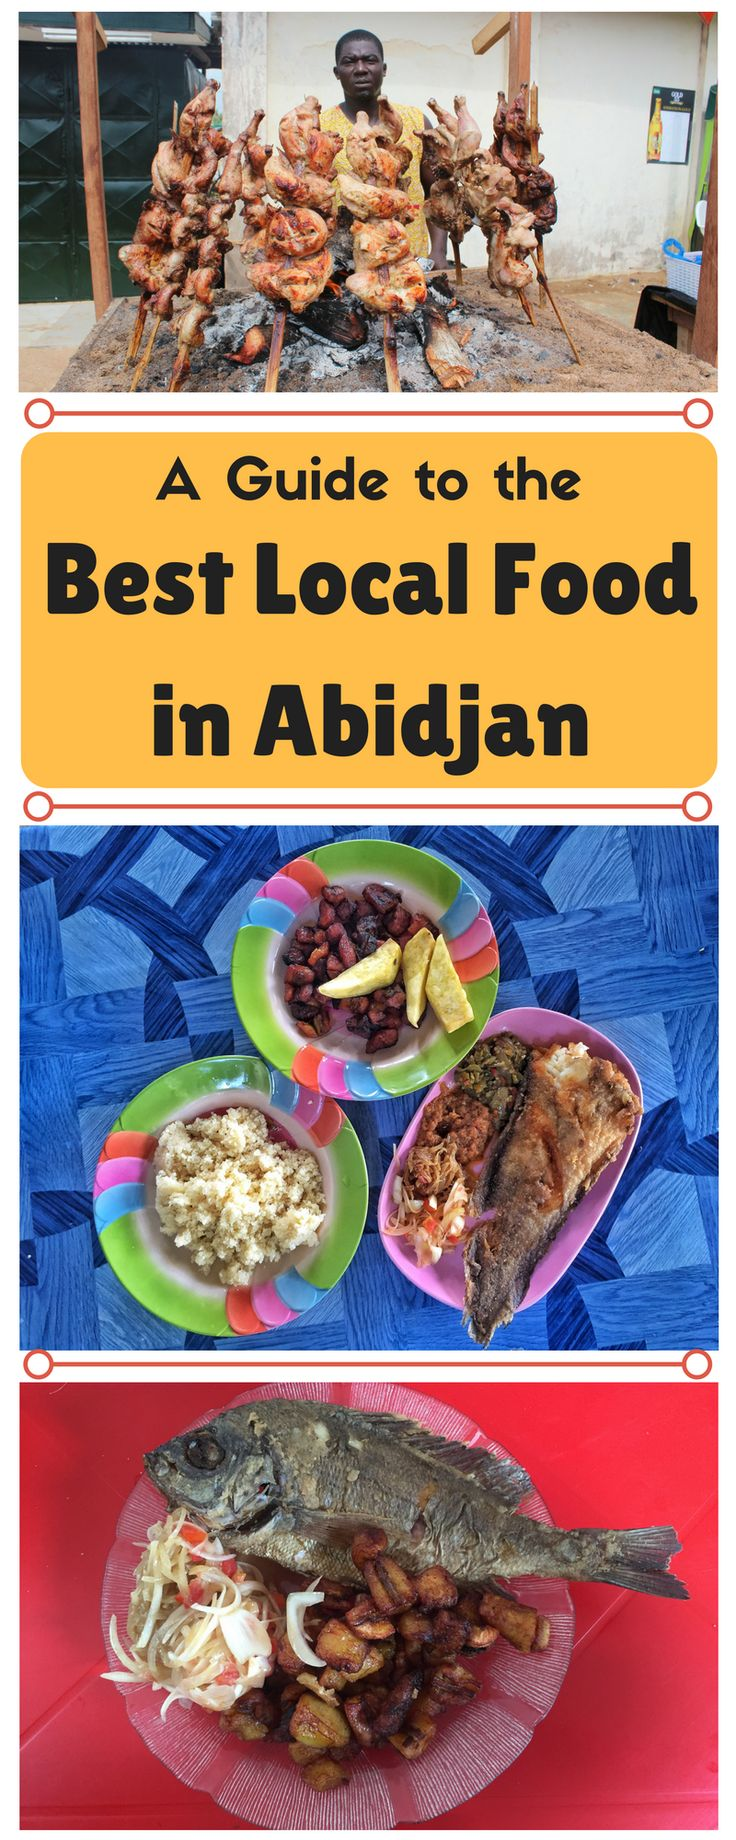 A Guide the the Best Local Food in Abidjan, Ivory Coast | Côte d'Ivoire, West Africa | Maps for Breakfast Travel Blog